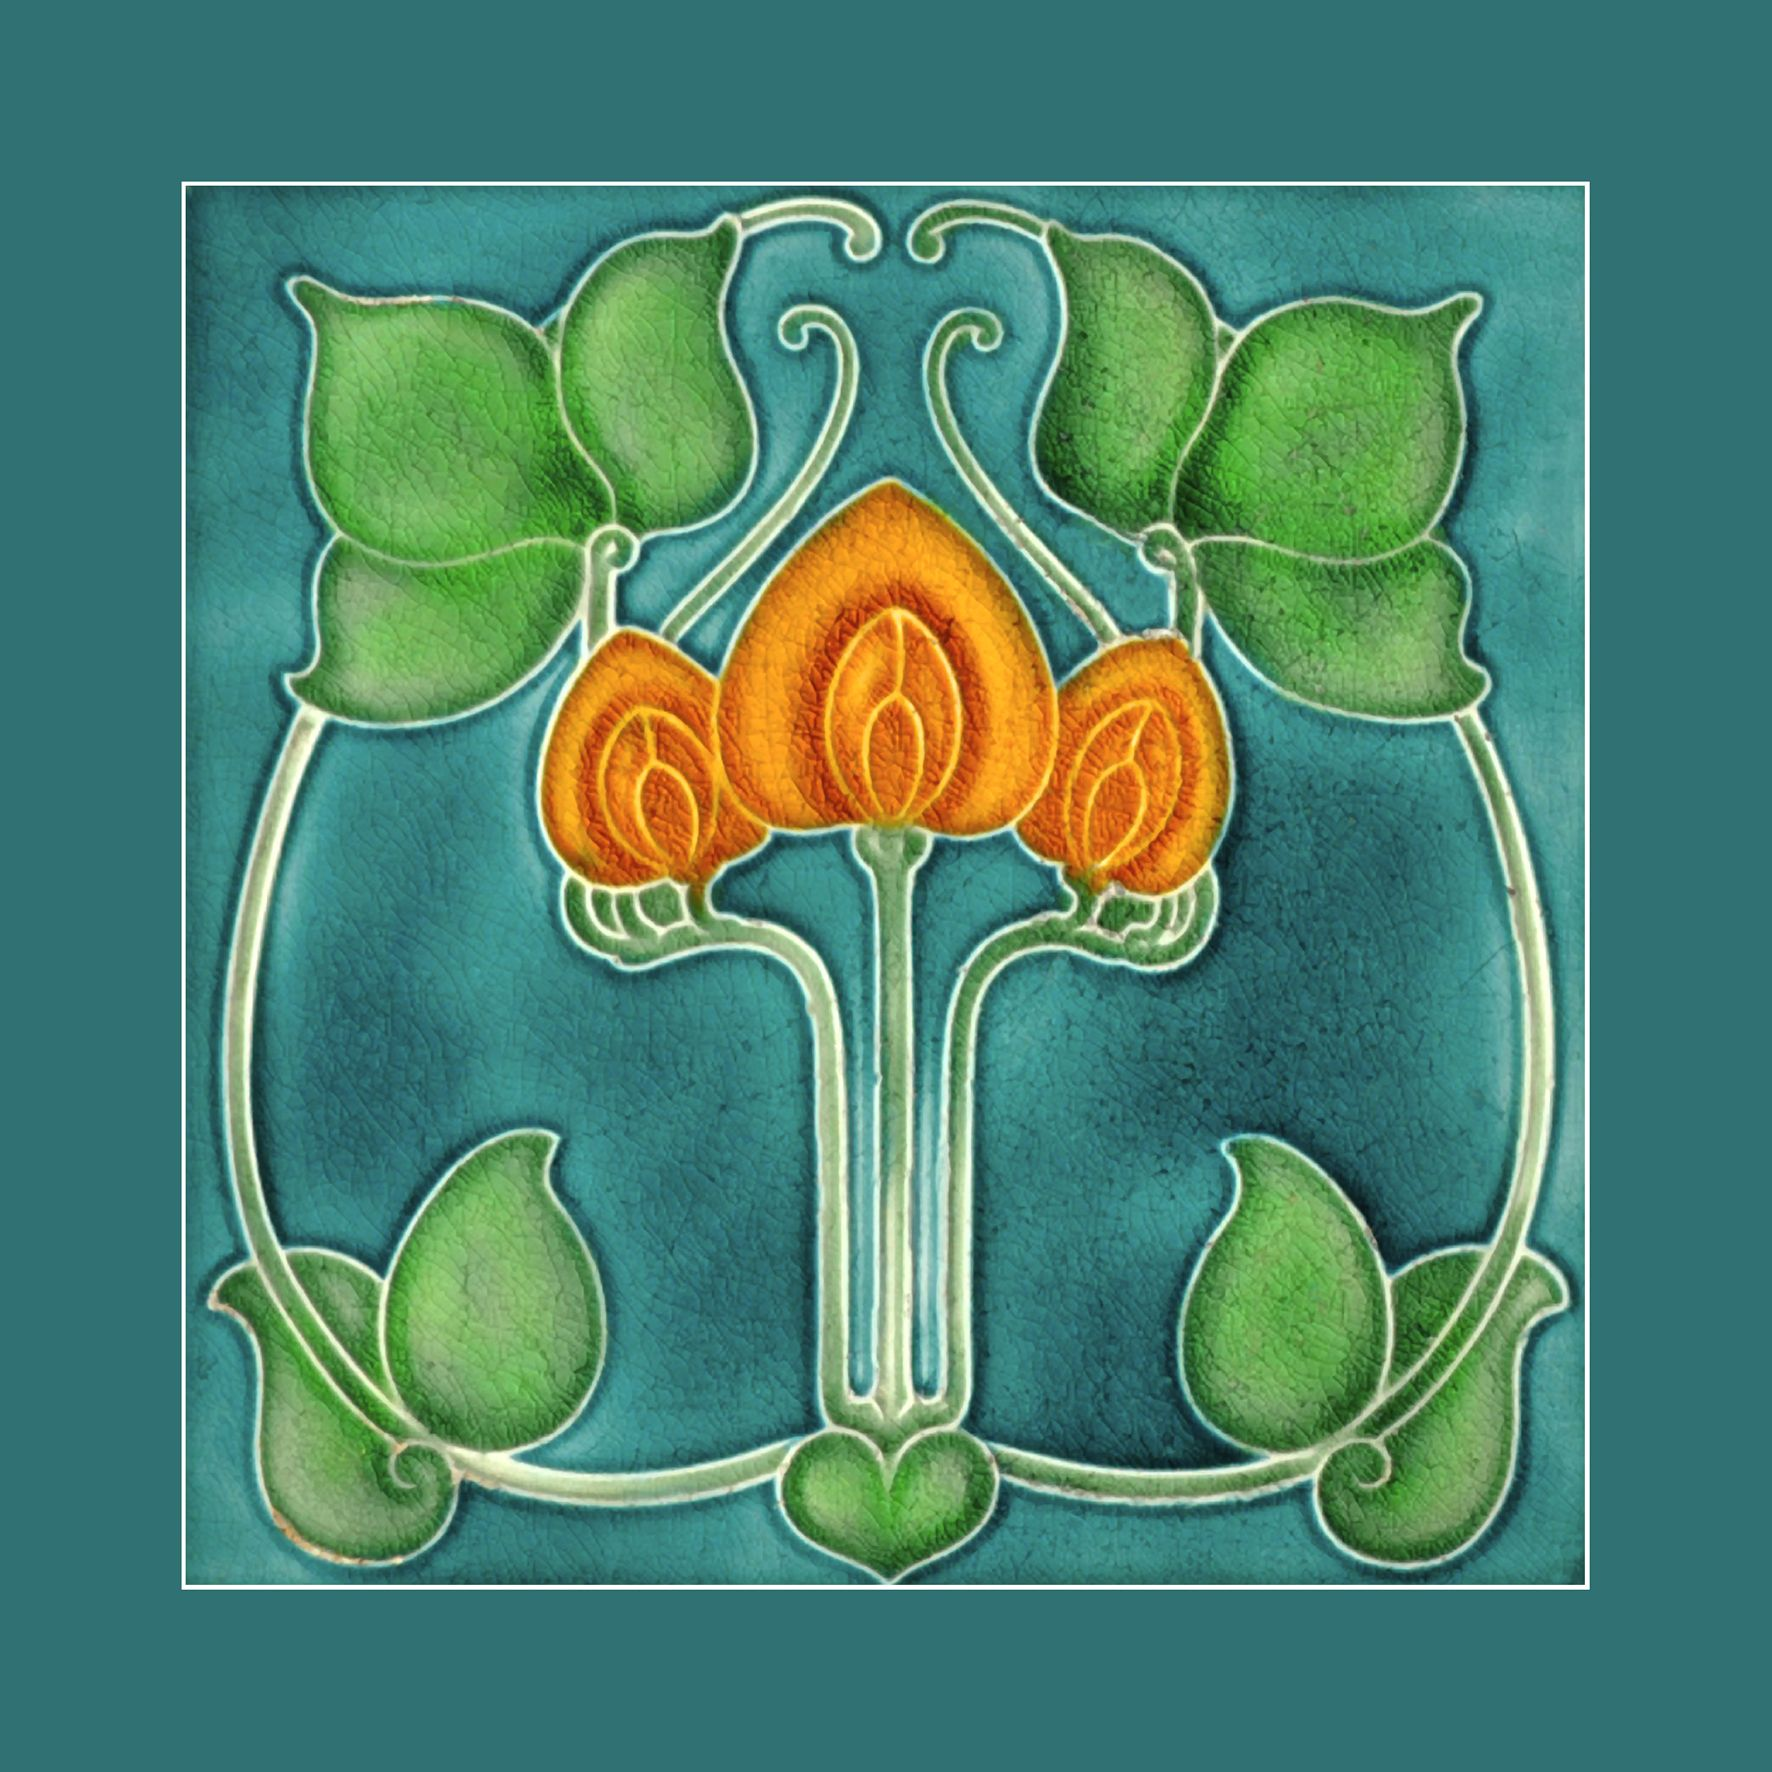 art nouveau tile by pilkington courtesy of robert smith  54 art nouveau tile by pilkington 1920 courtesy of robert smith from his